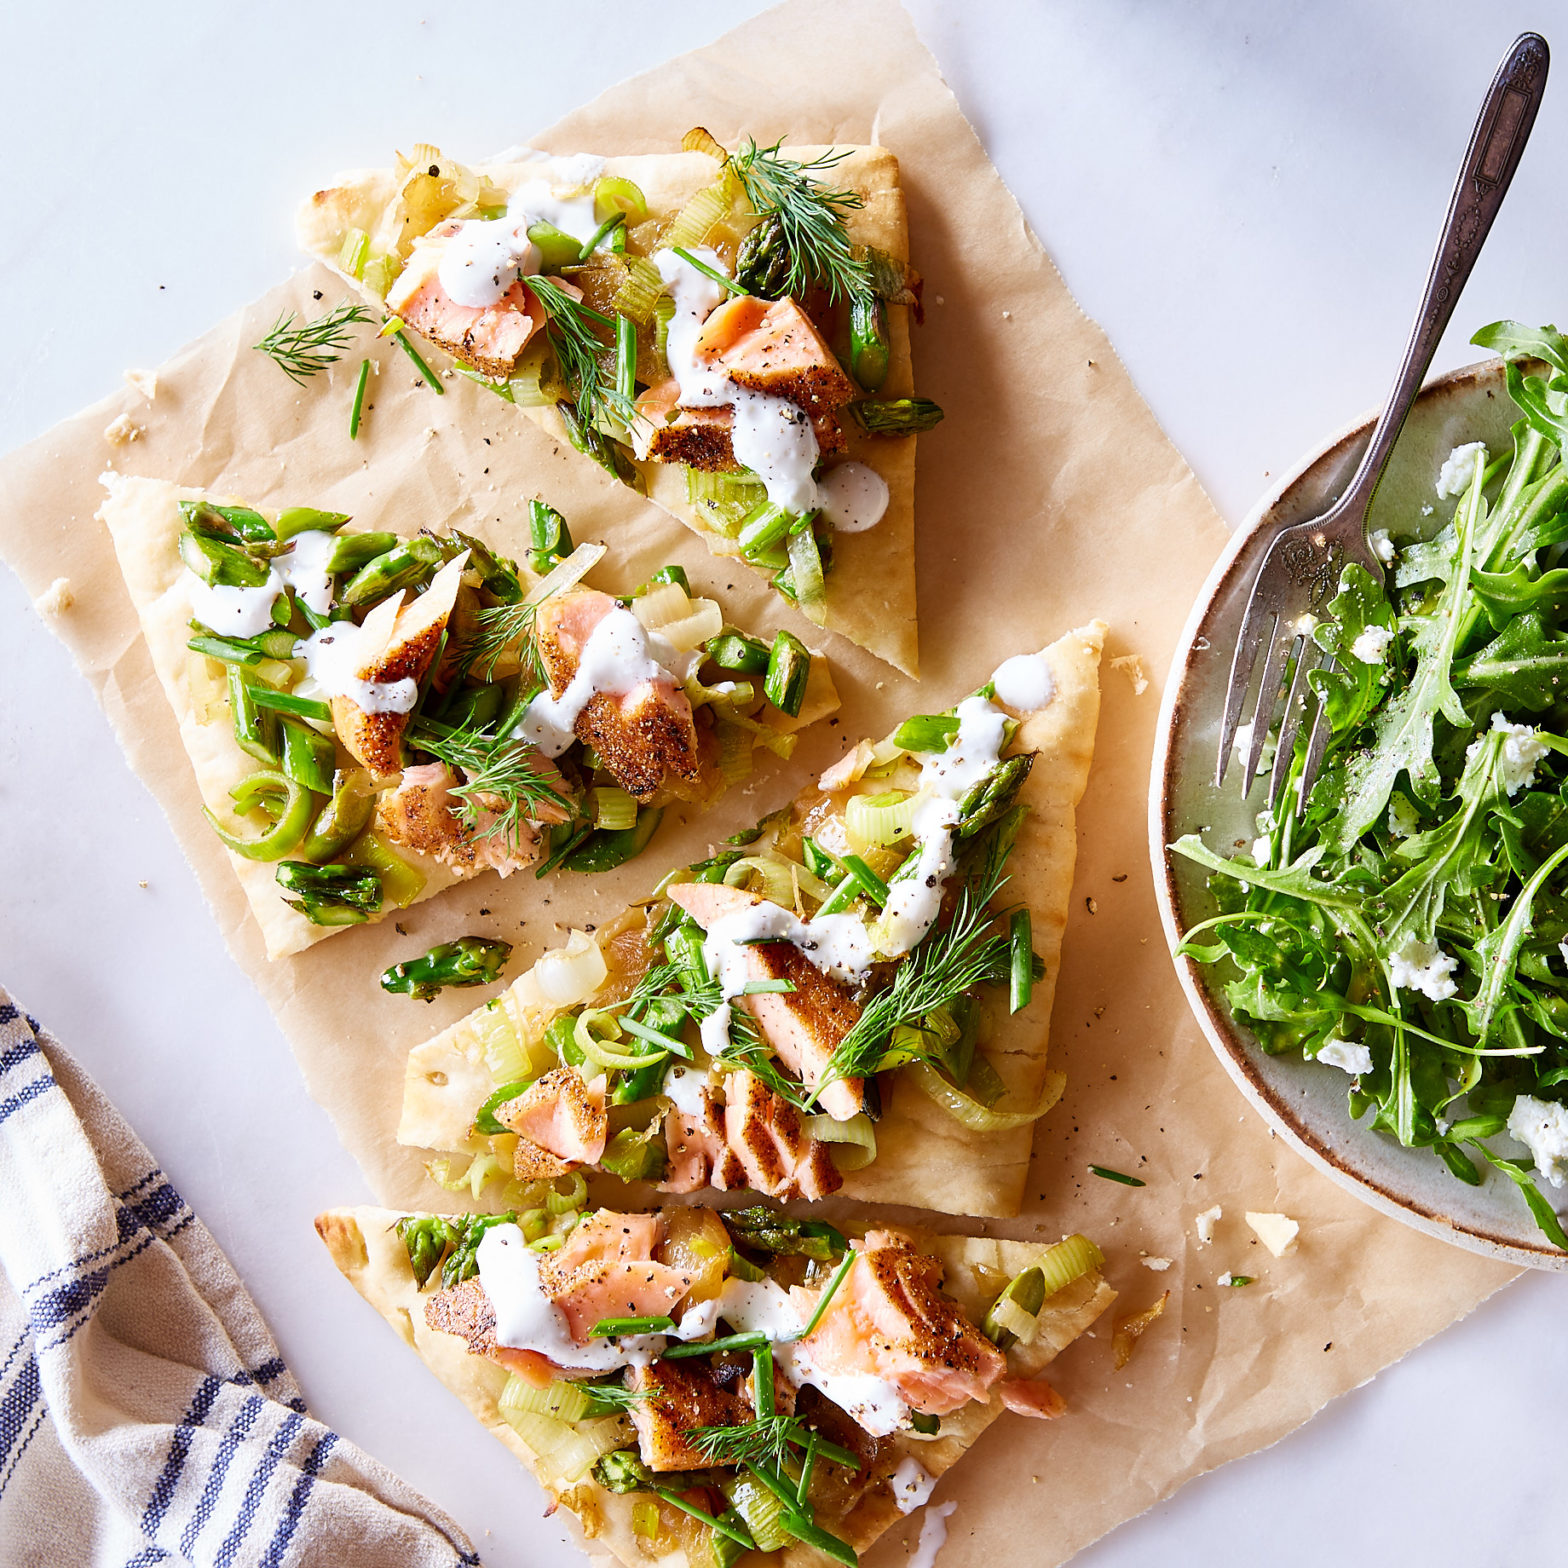 Everything Spice Smoked King Salmon Pizzette with Asparagus & Creme Fraiche